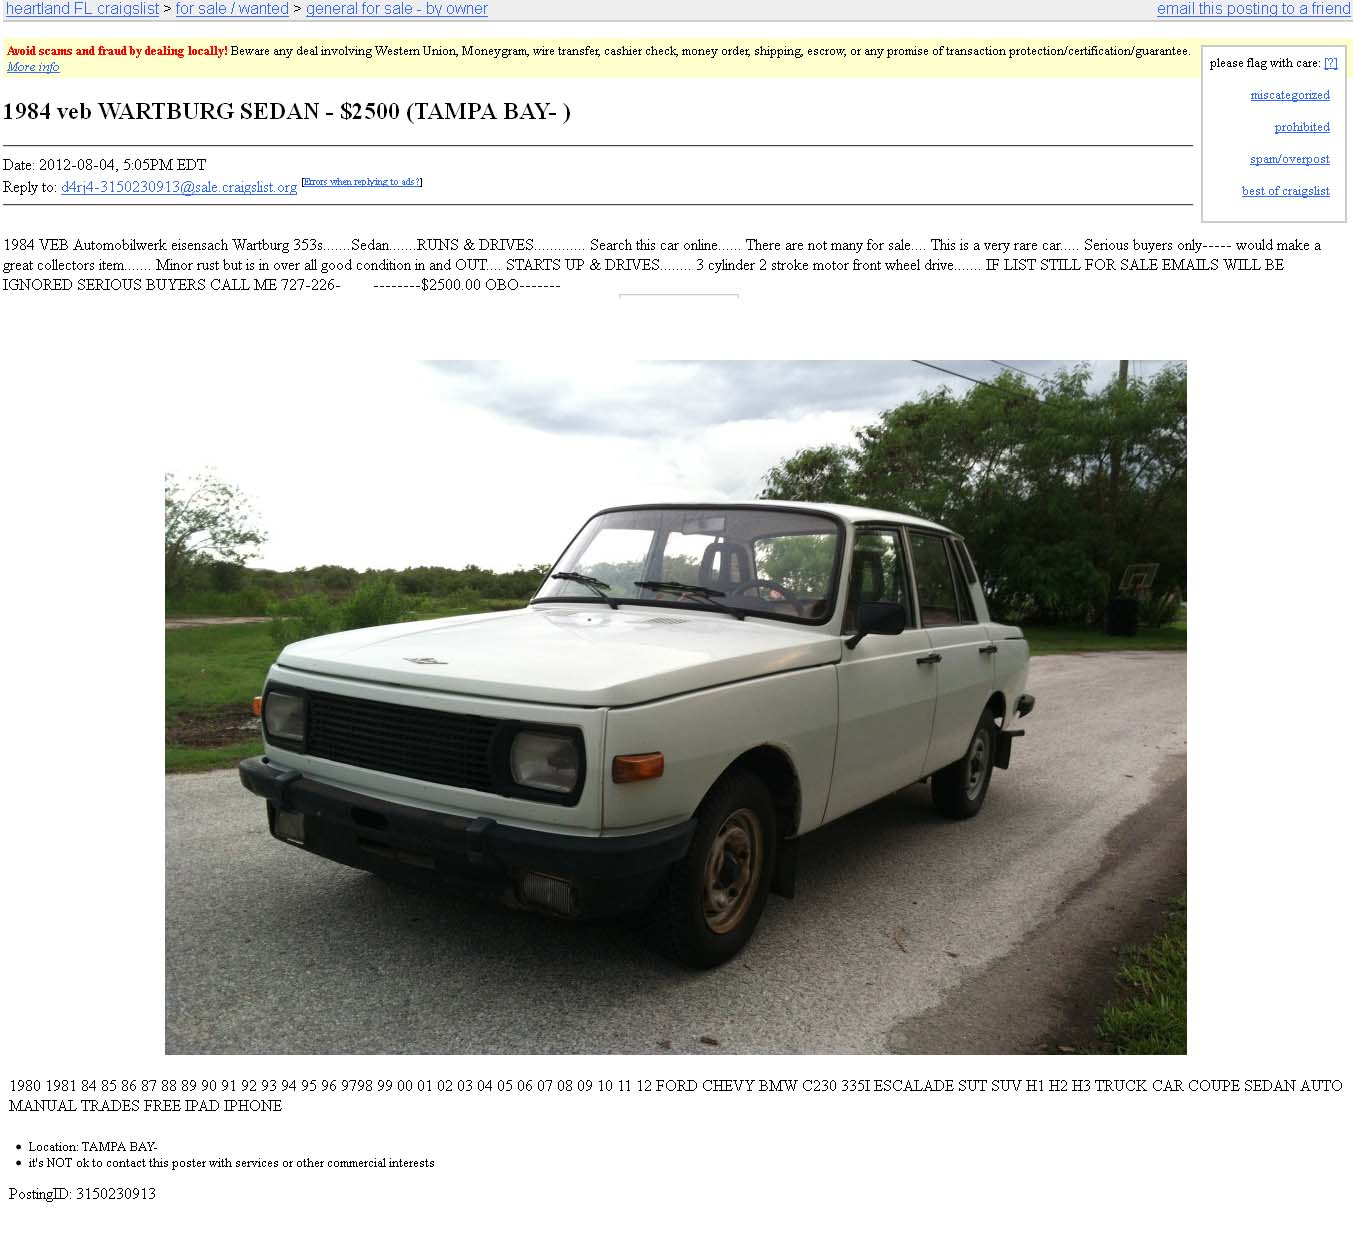 Craigslist Tampa Bay Area Cars For Sale By Owner Craigslist Pasco